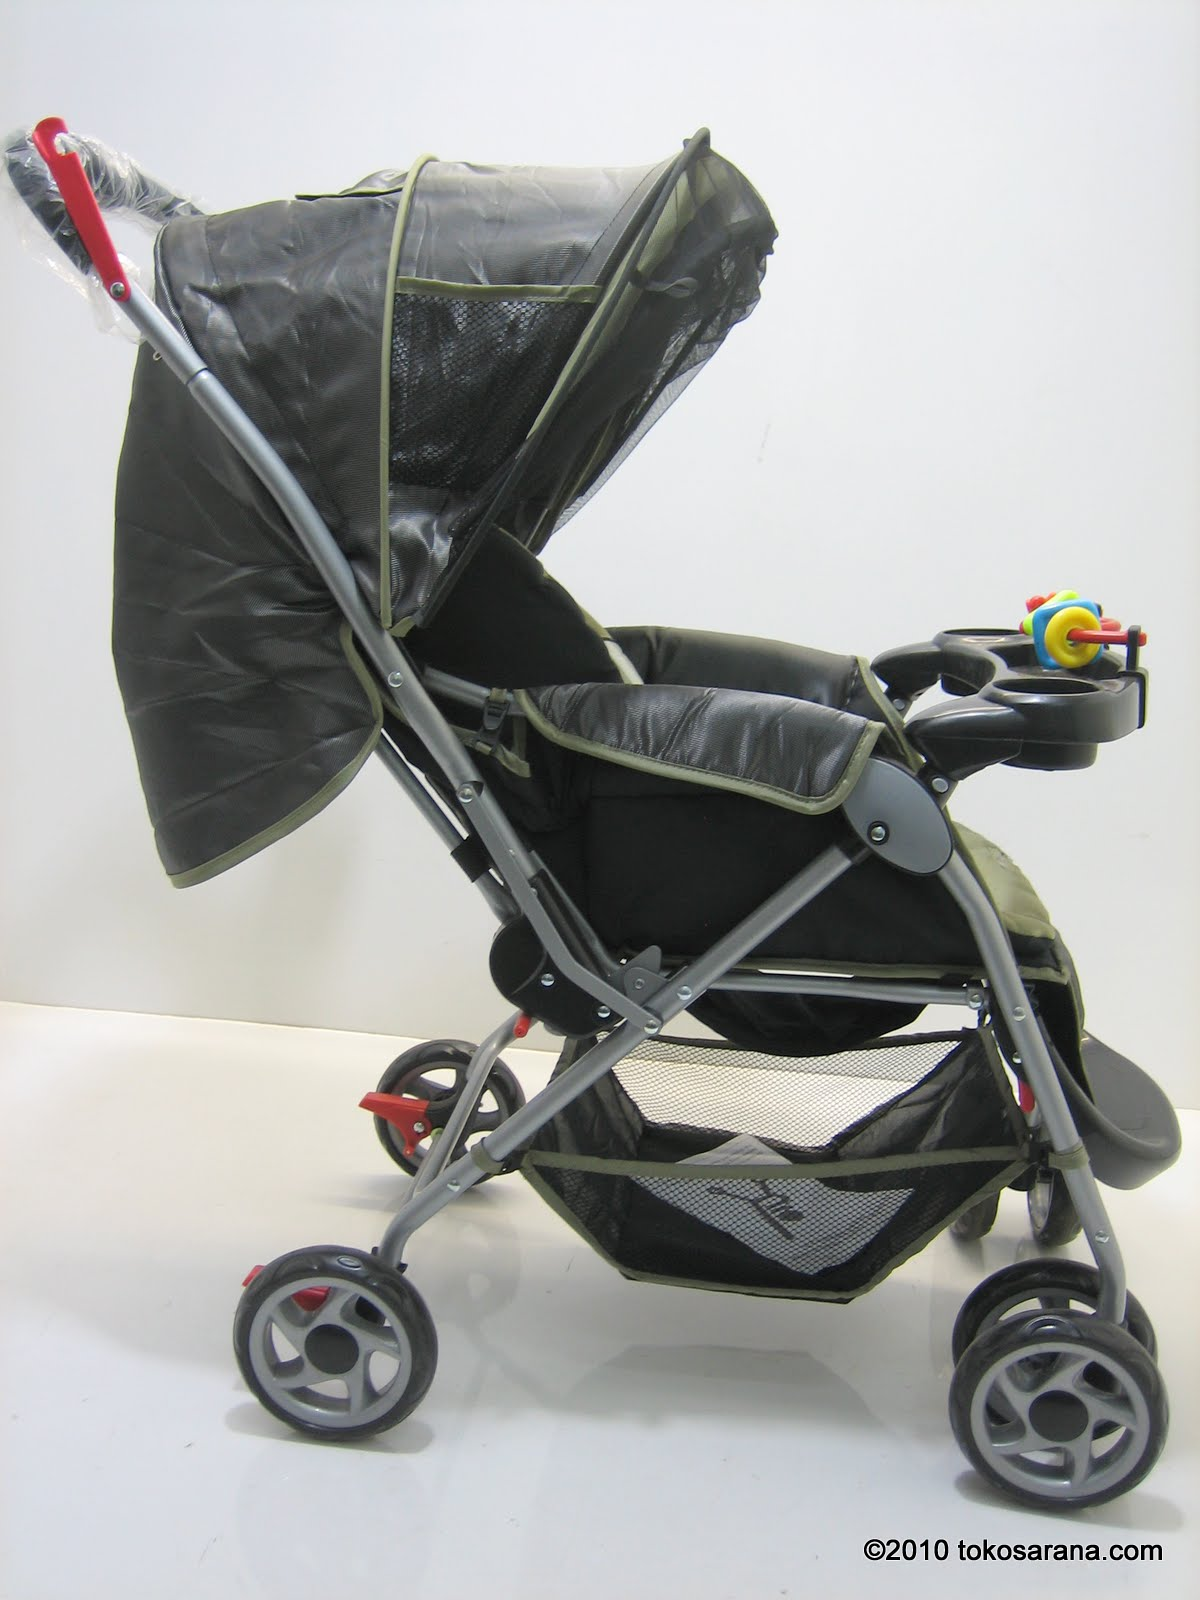 Pliko Stroller New Buggy Adventure 2 S 108 Kereta Dorong Bayi Merah Baby Elle Revo 330 Cabin Size With Travelling Source